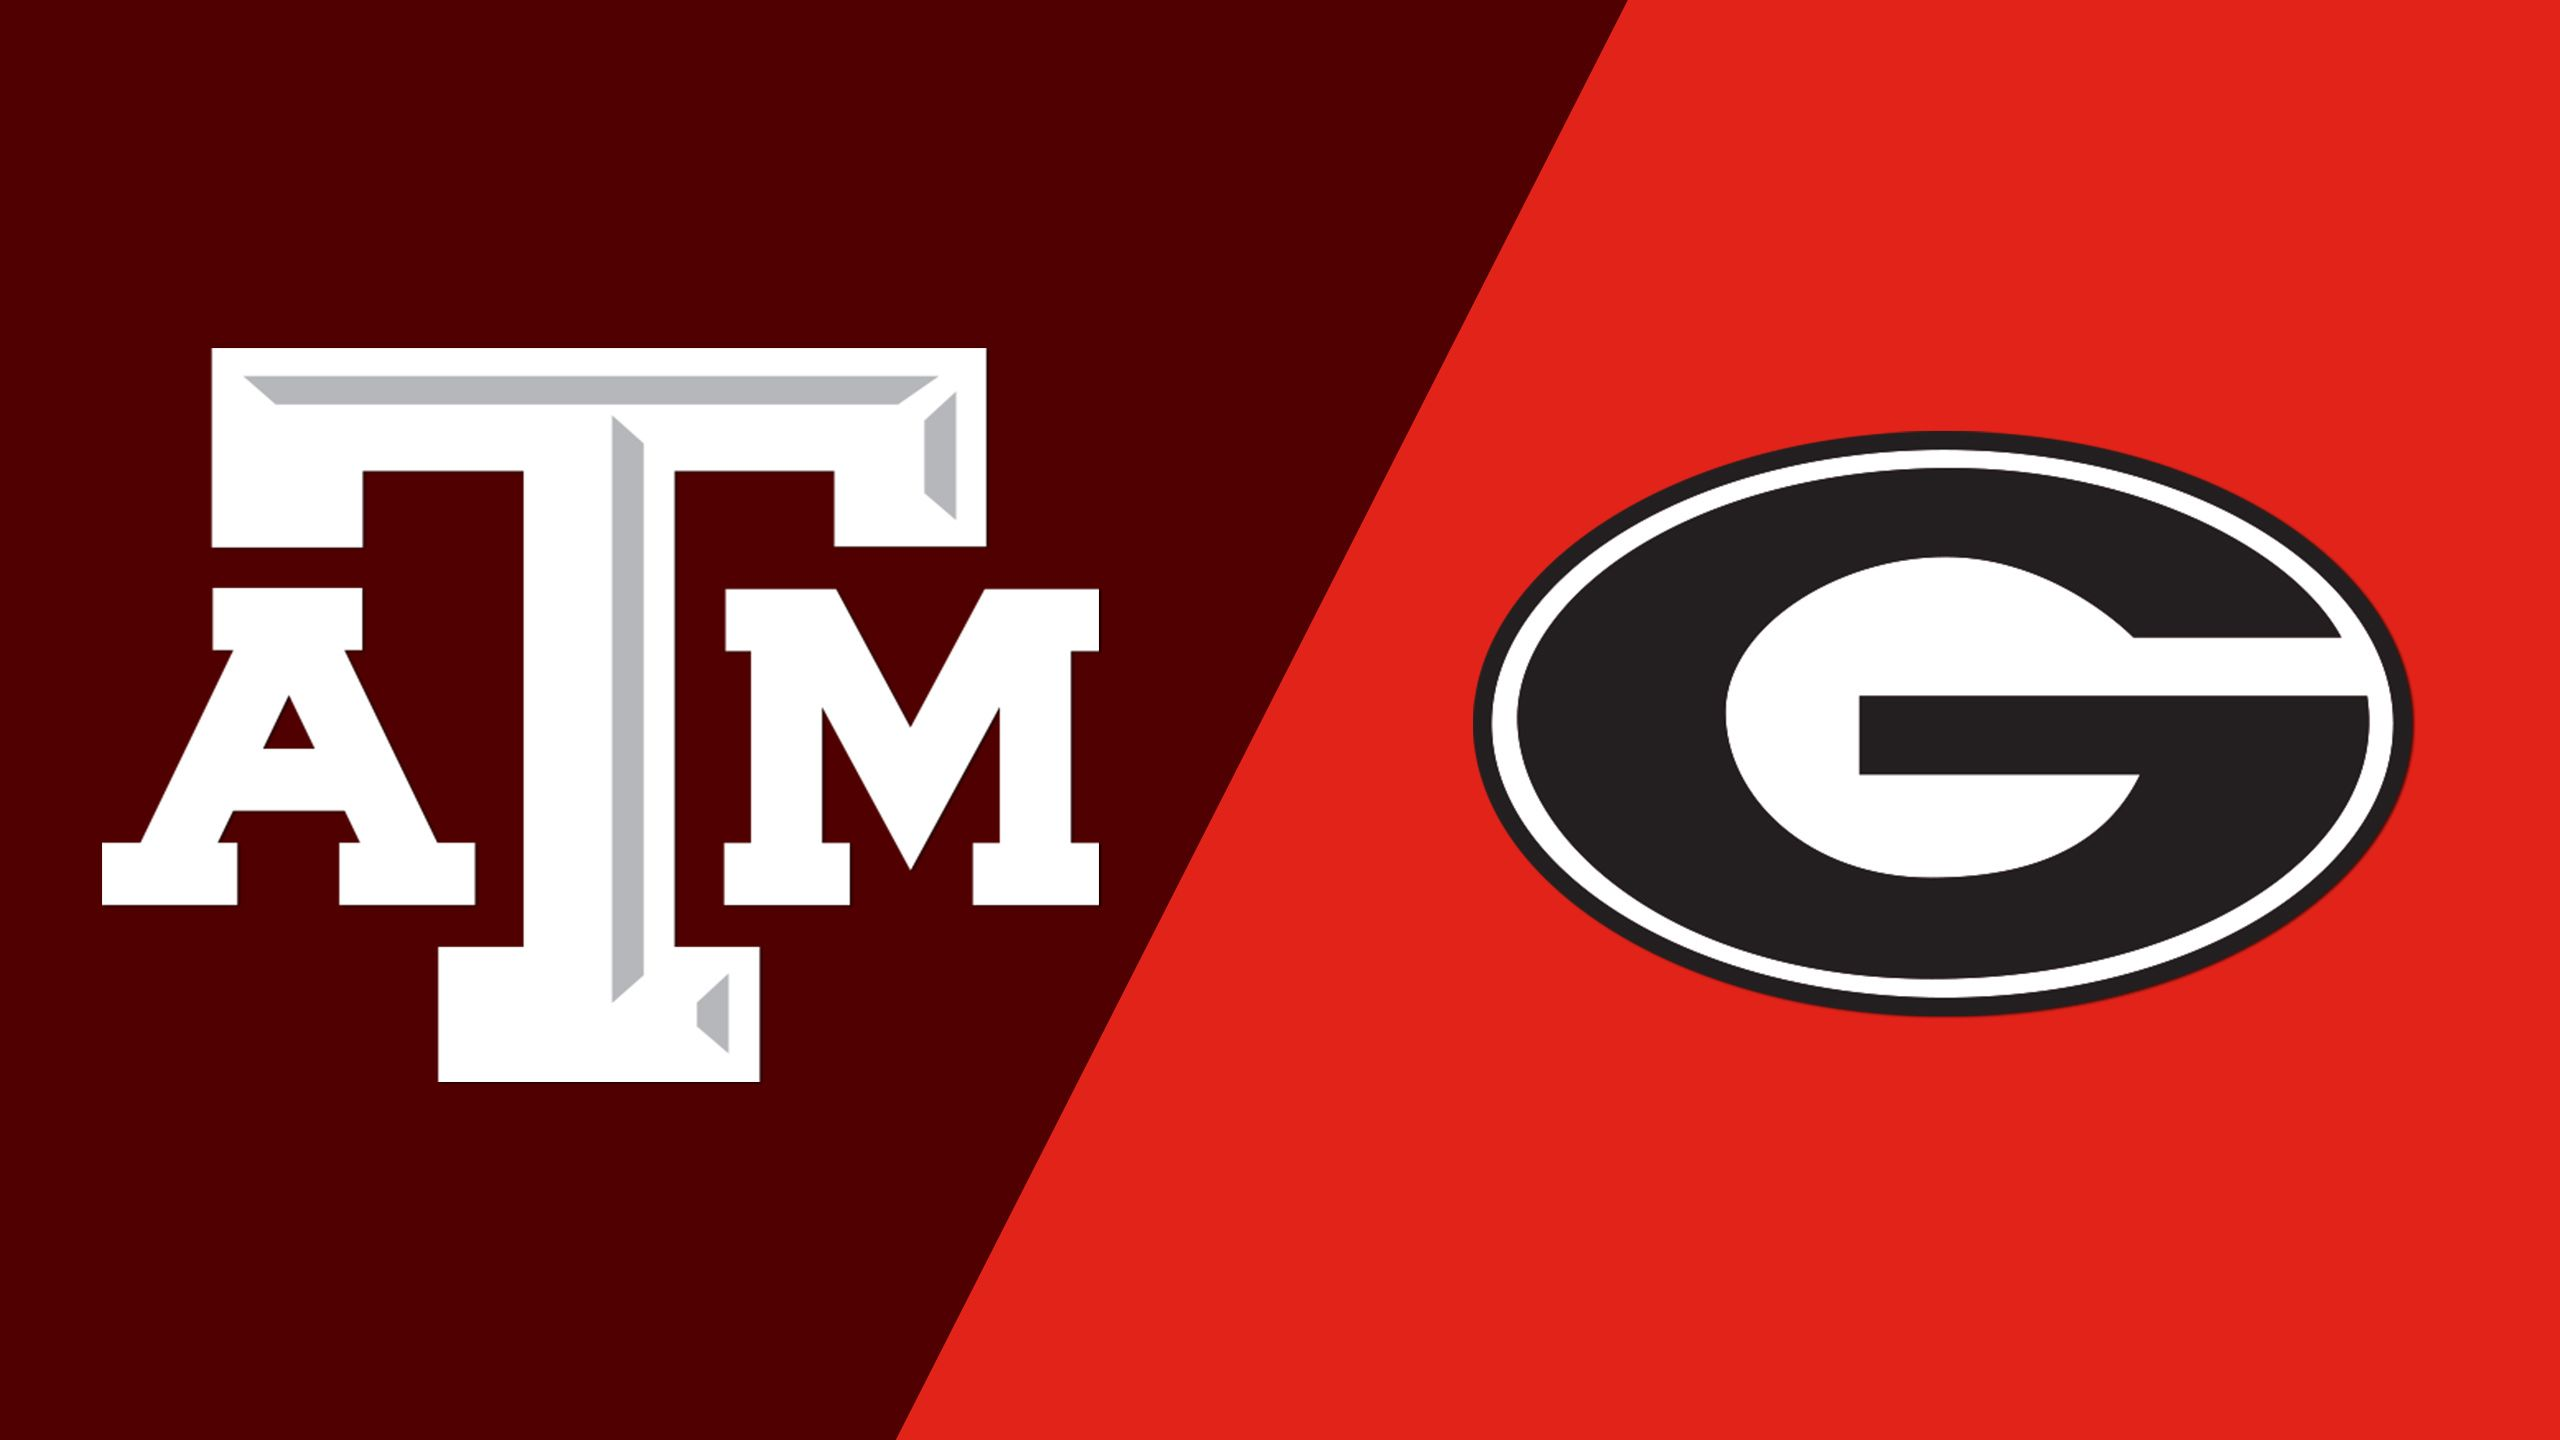 Texas A&M vs. #8 Georgia (Second Round) (SEC Baseball Tournament)